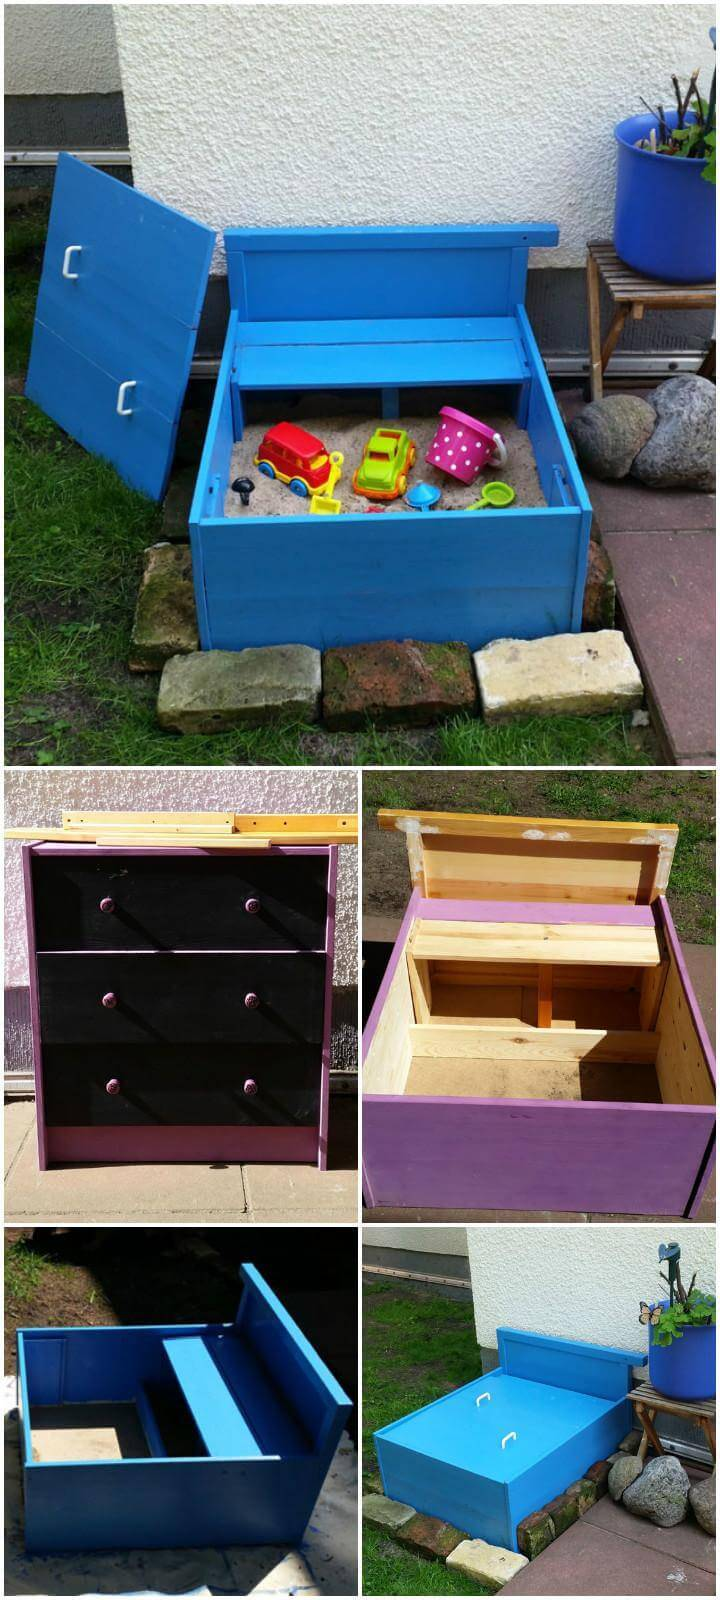 60 diy sandbox ideas and projects for kids page 3 of 10 diy